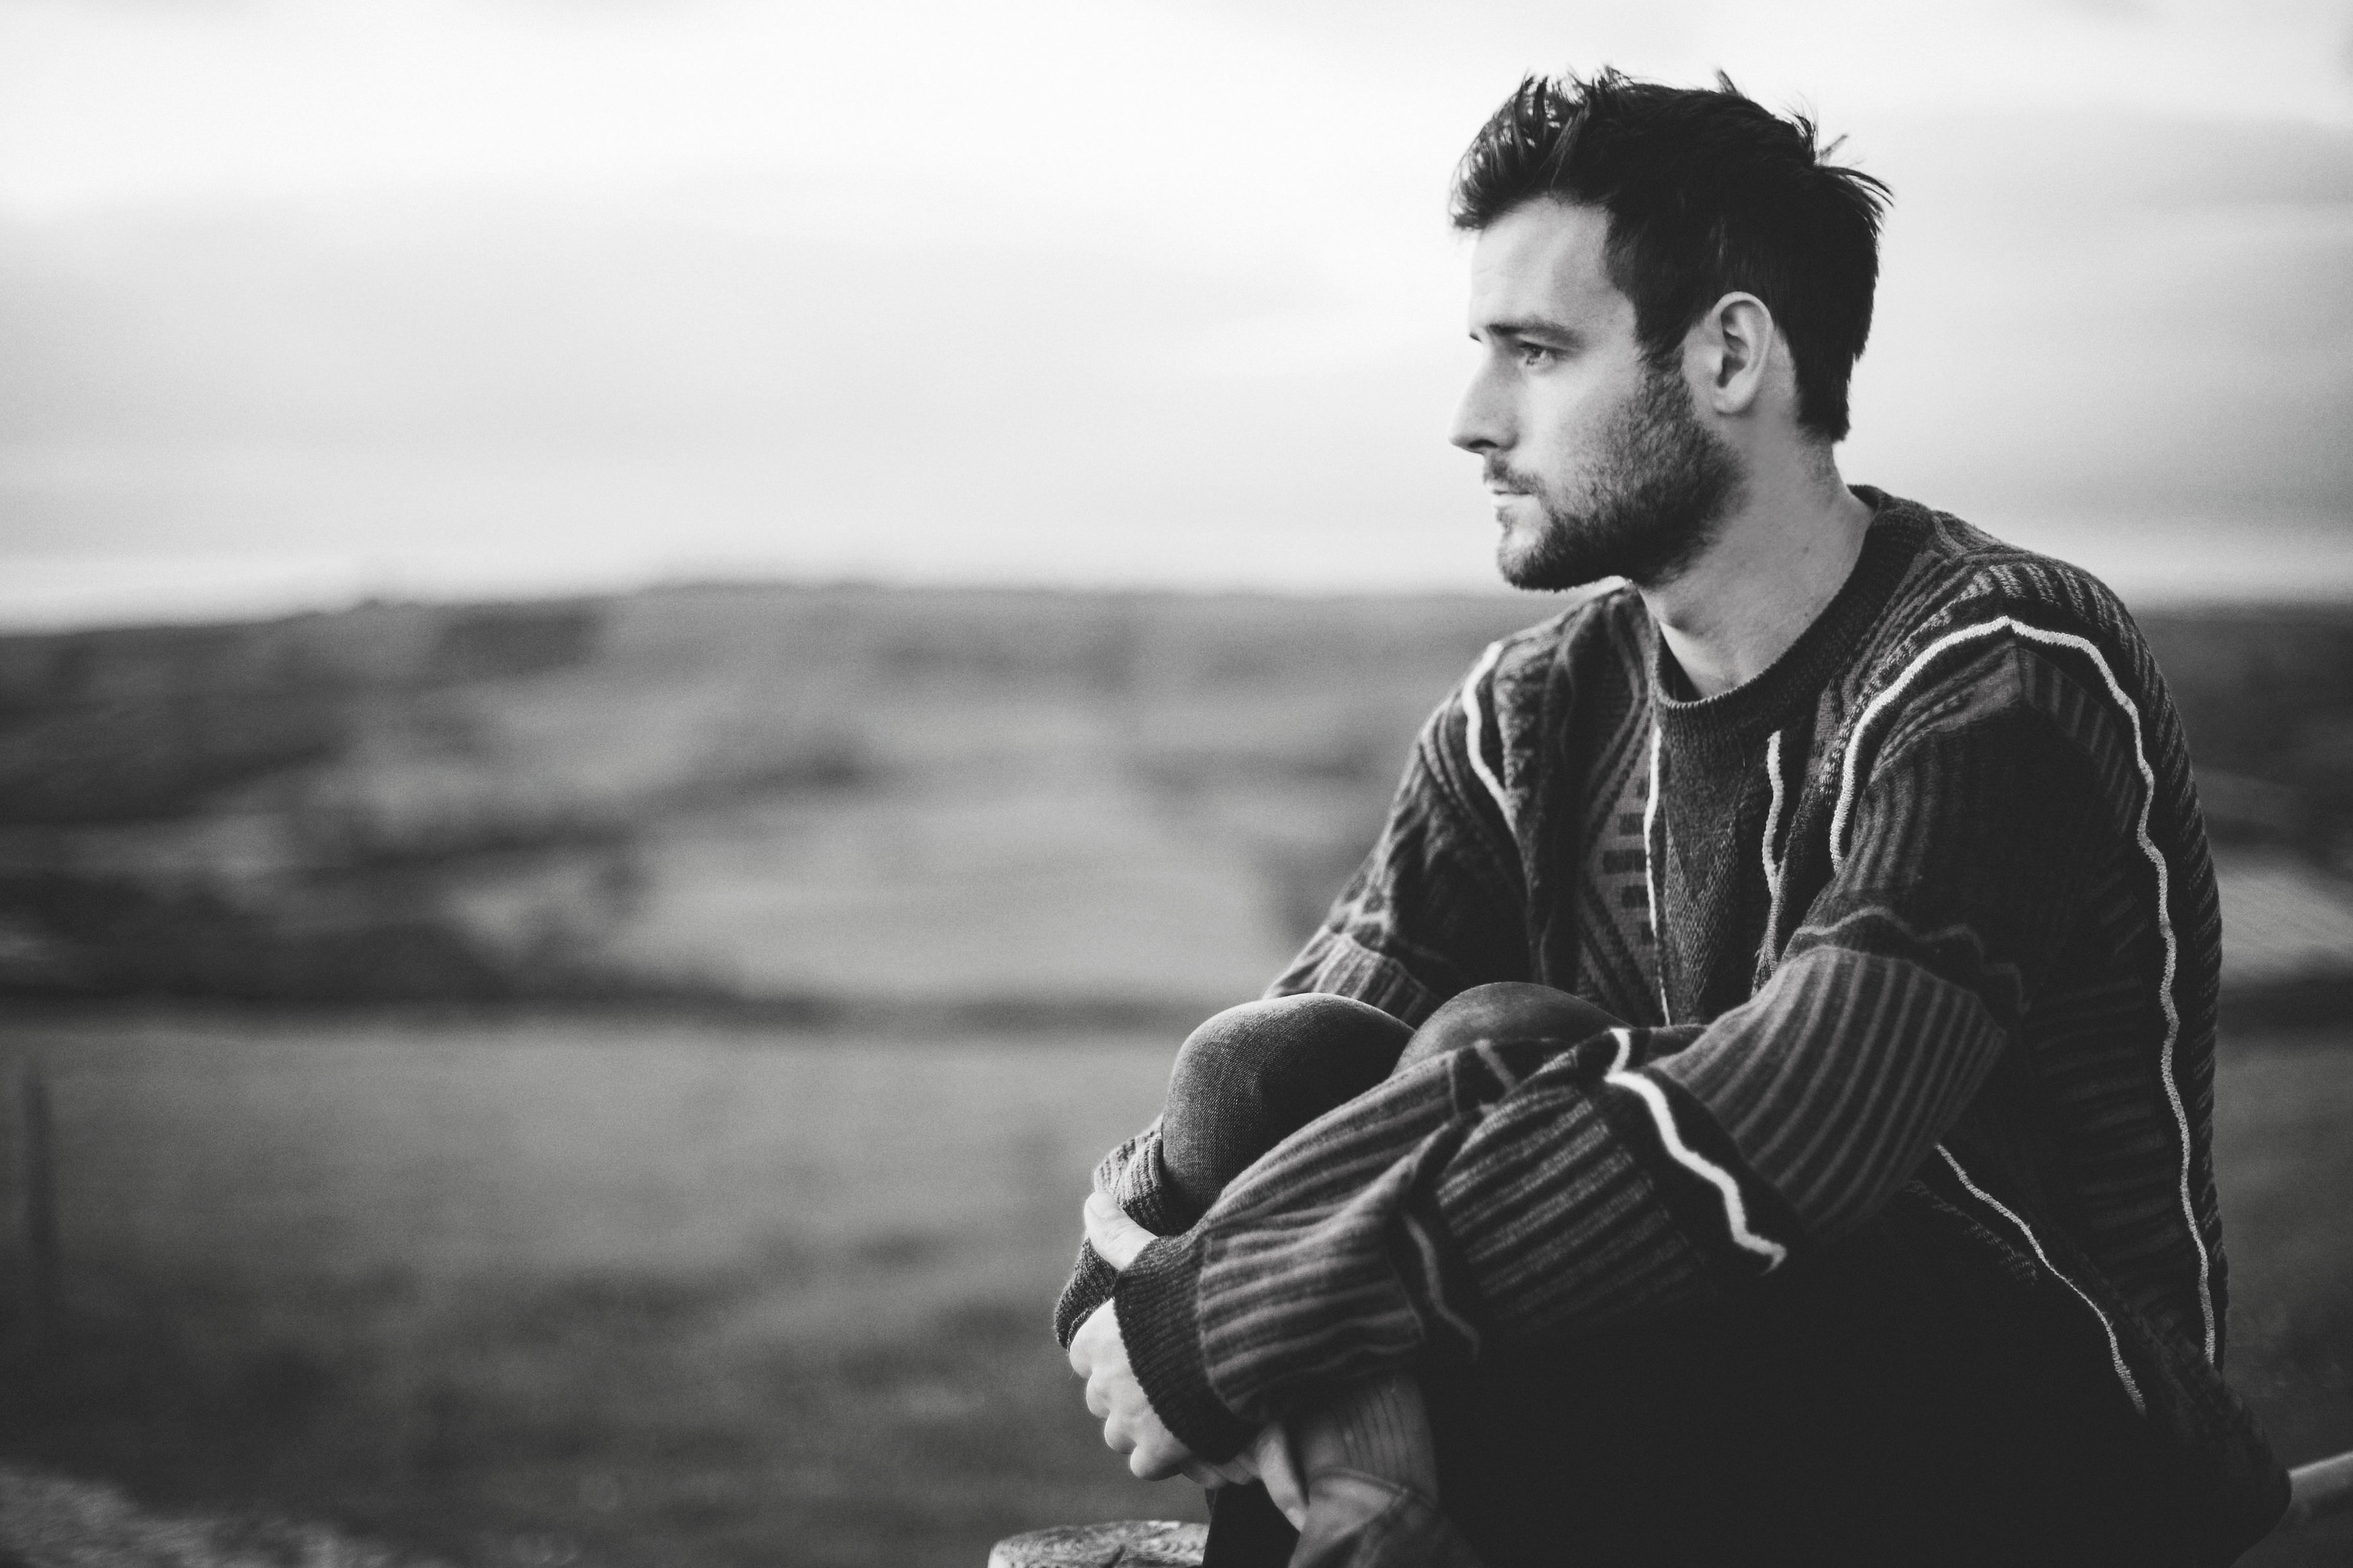 Roo Panes © Pitch and Smith